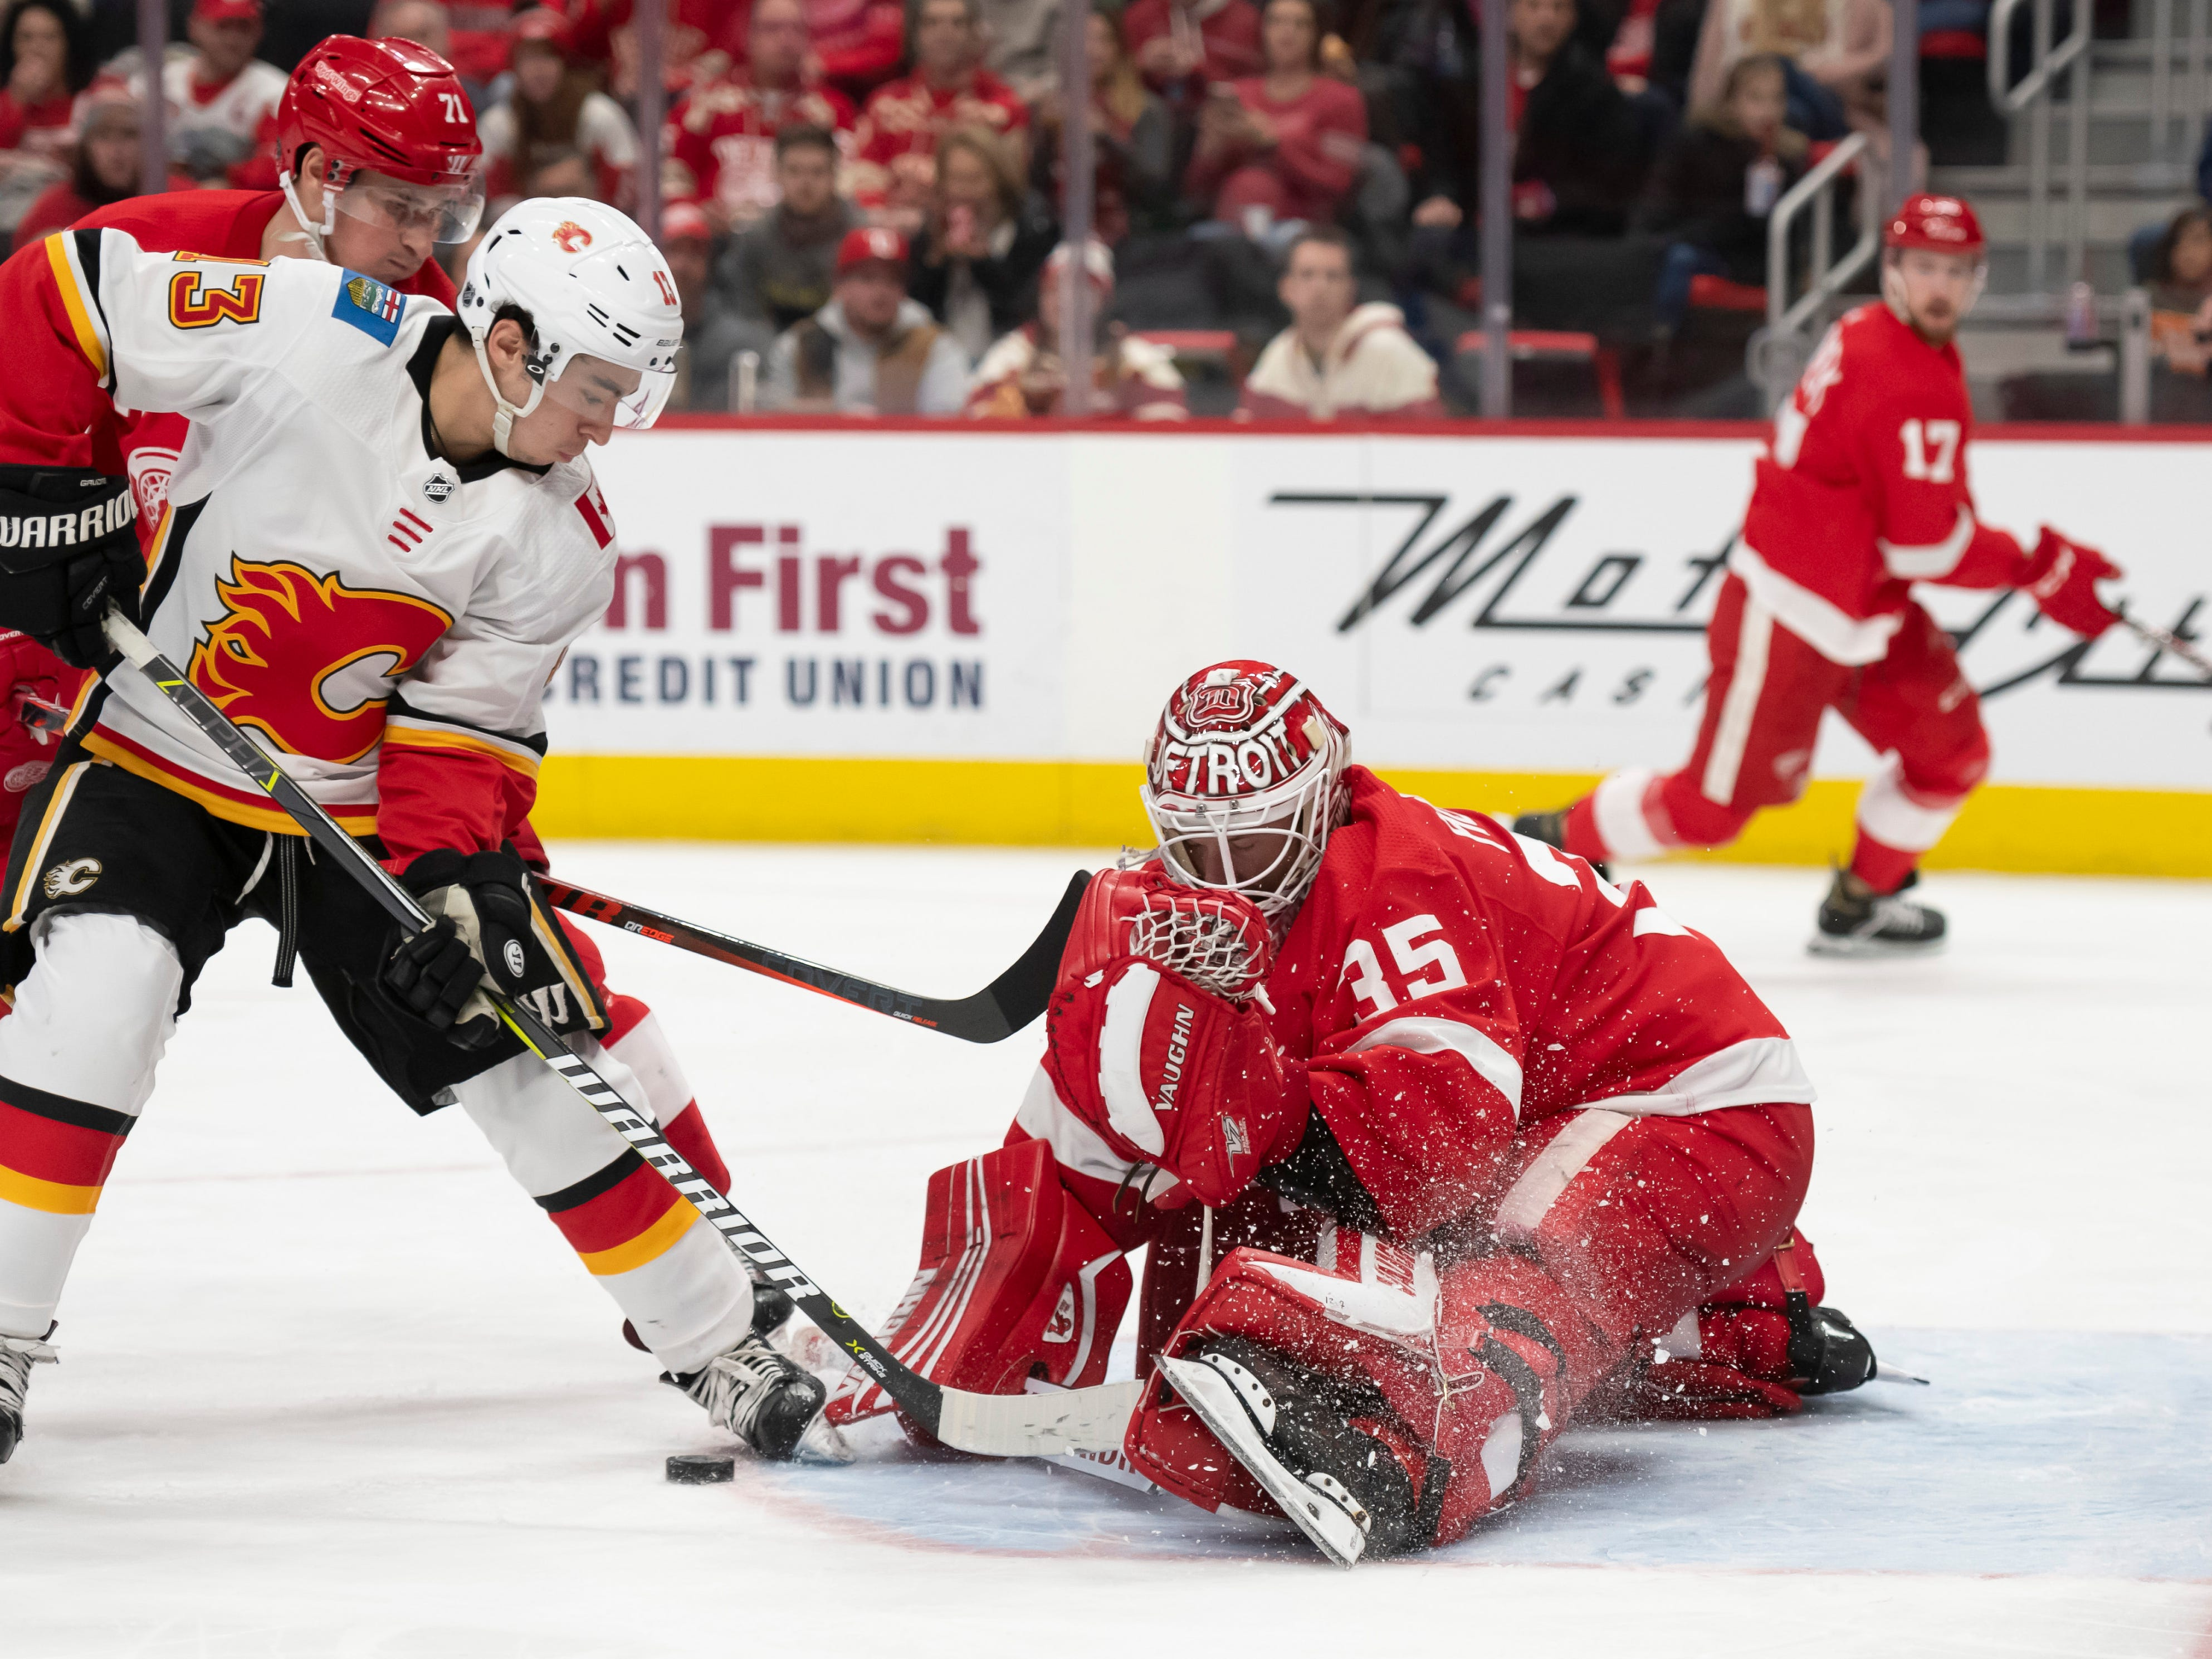 17. Jimmy Howard, G, Detroit: There aren't any playoff contenders looking to add goaltending, but that can change quickly with one injury. The Wings appear more interested in re-signing Howard, anyway.